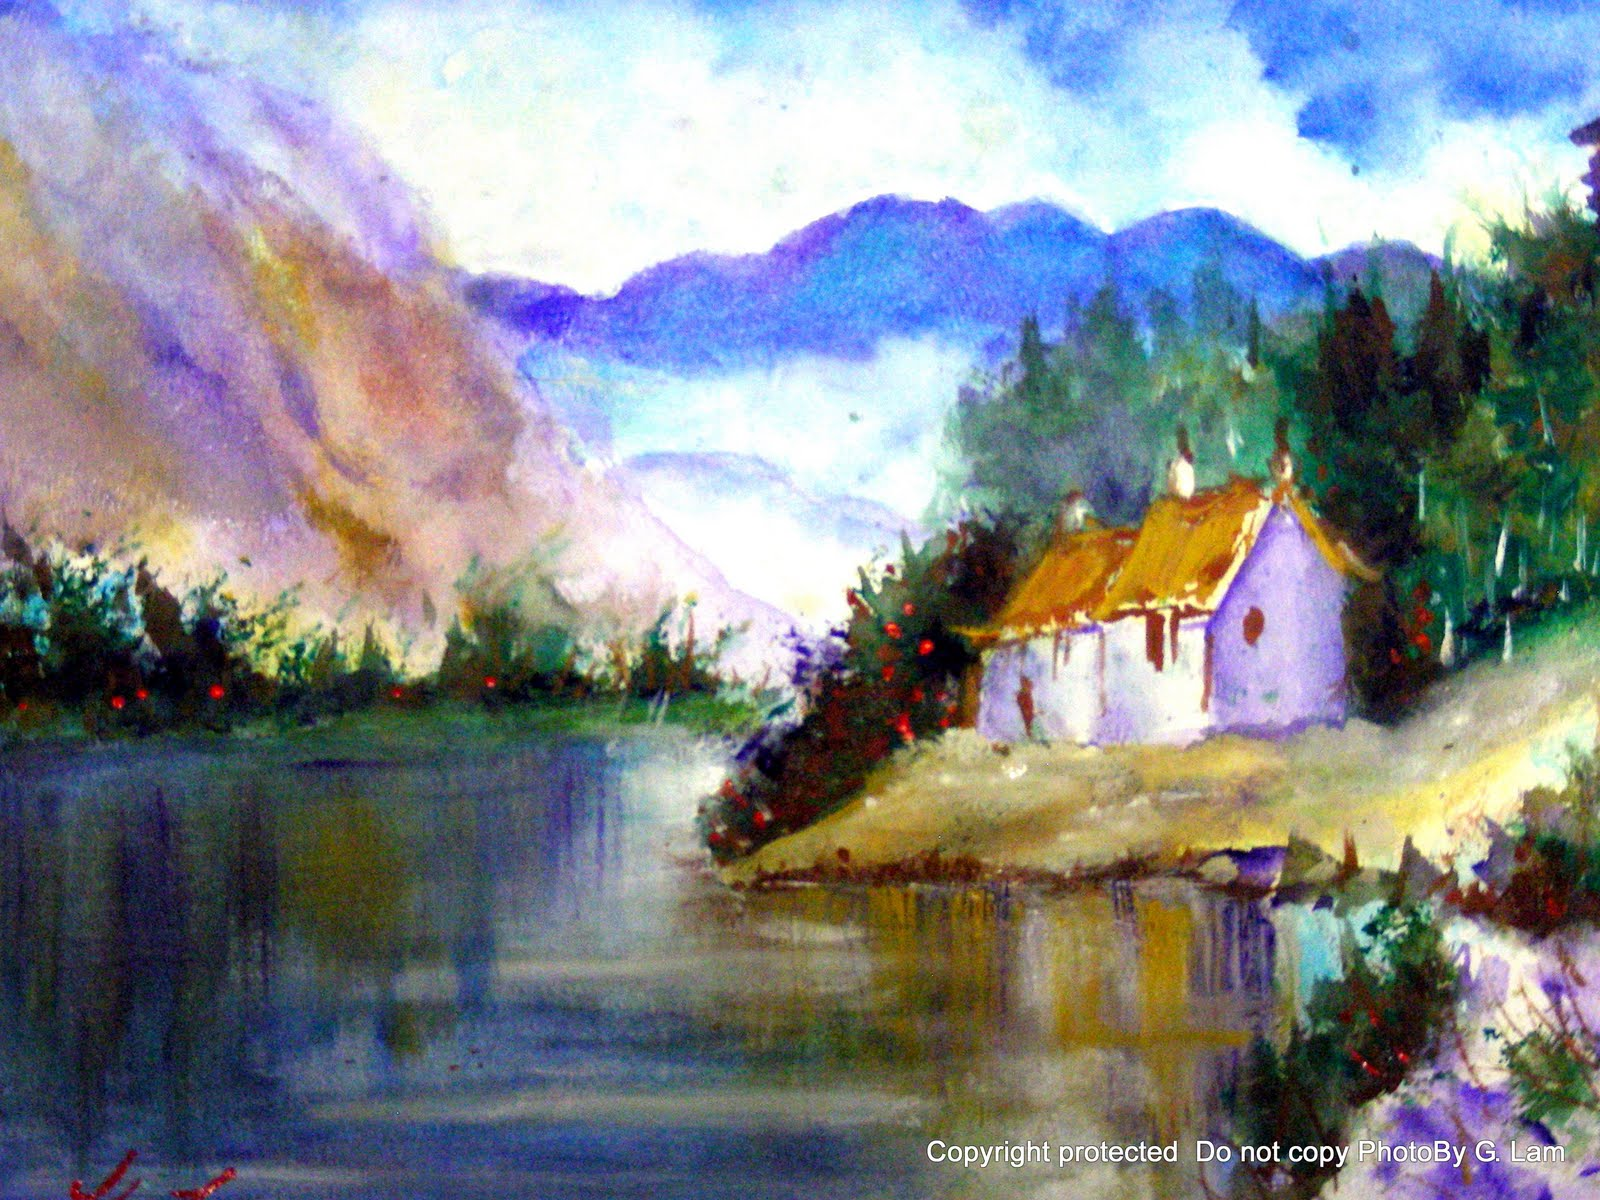 1600x1200 Artscanyon Gallery Two Watercolor Landscape Paintings